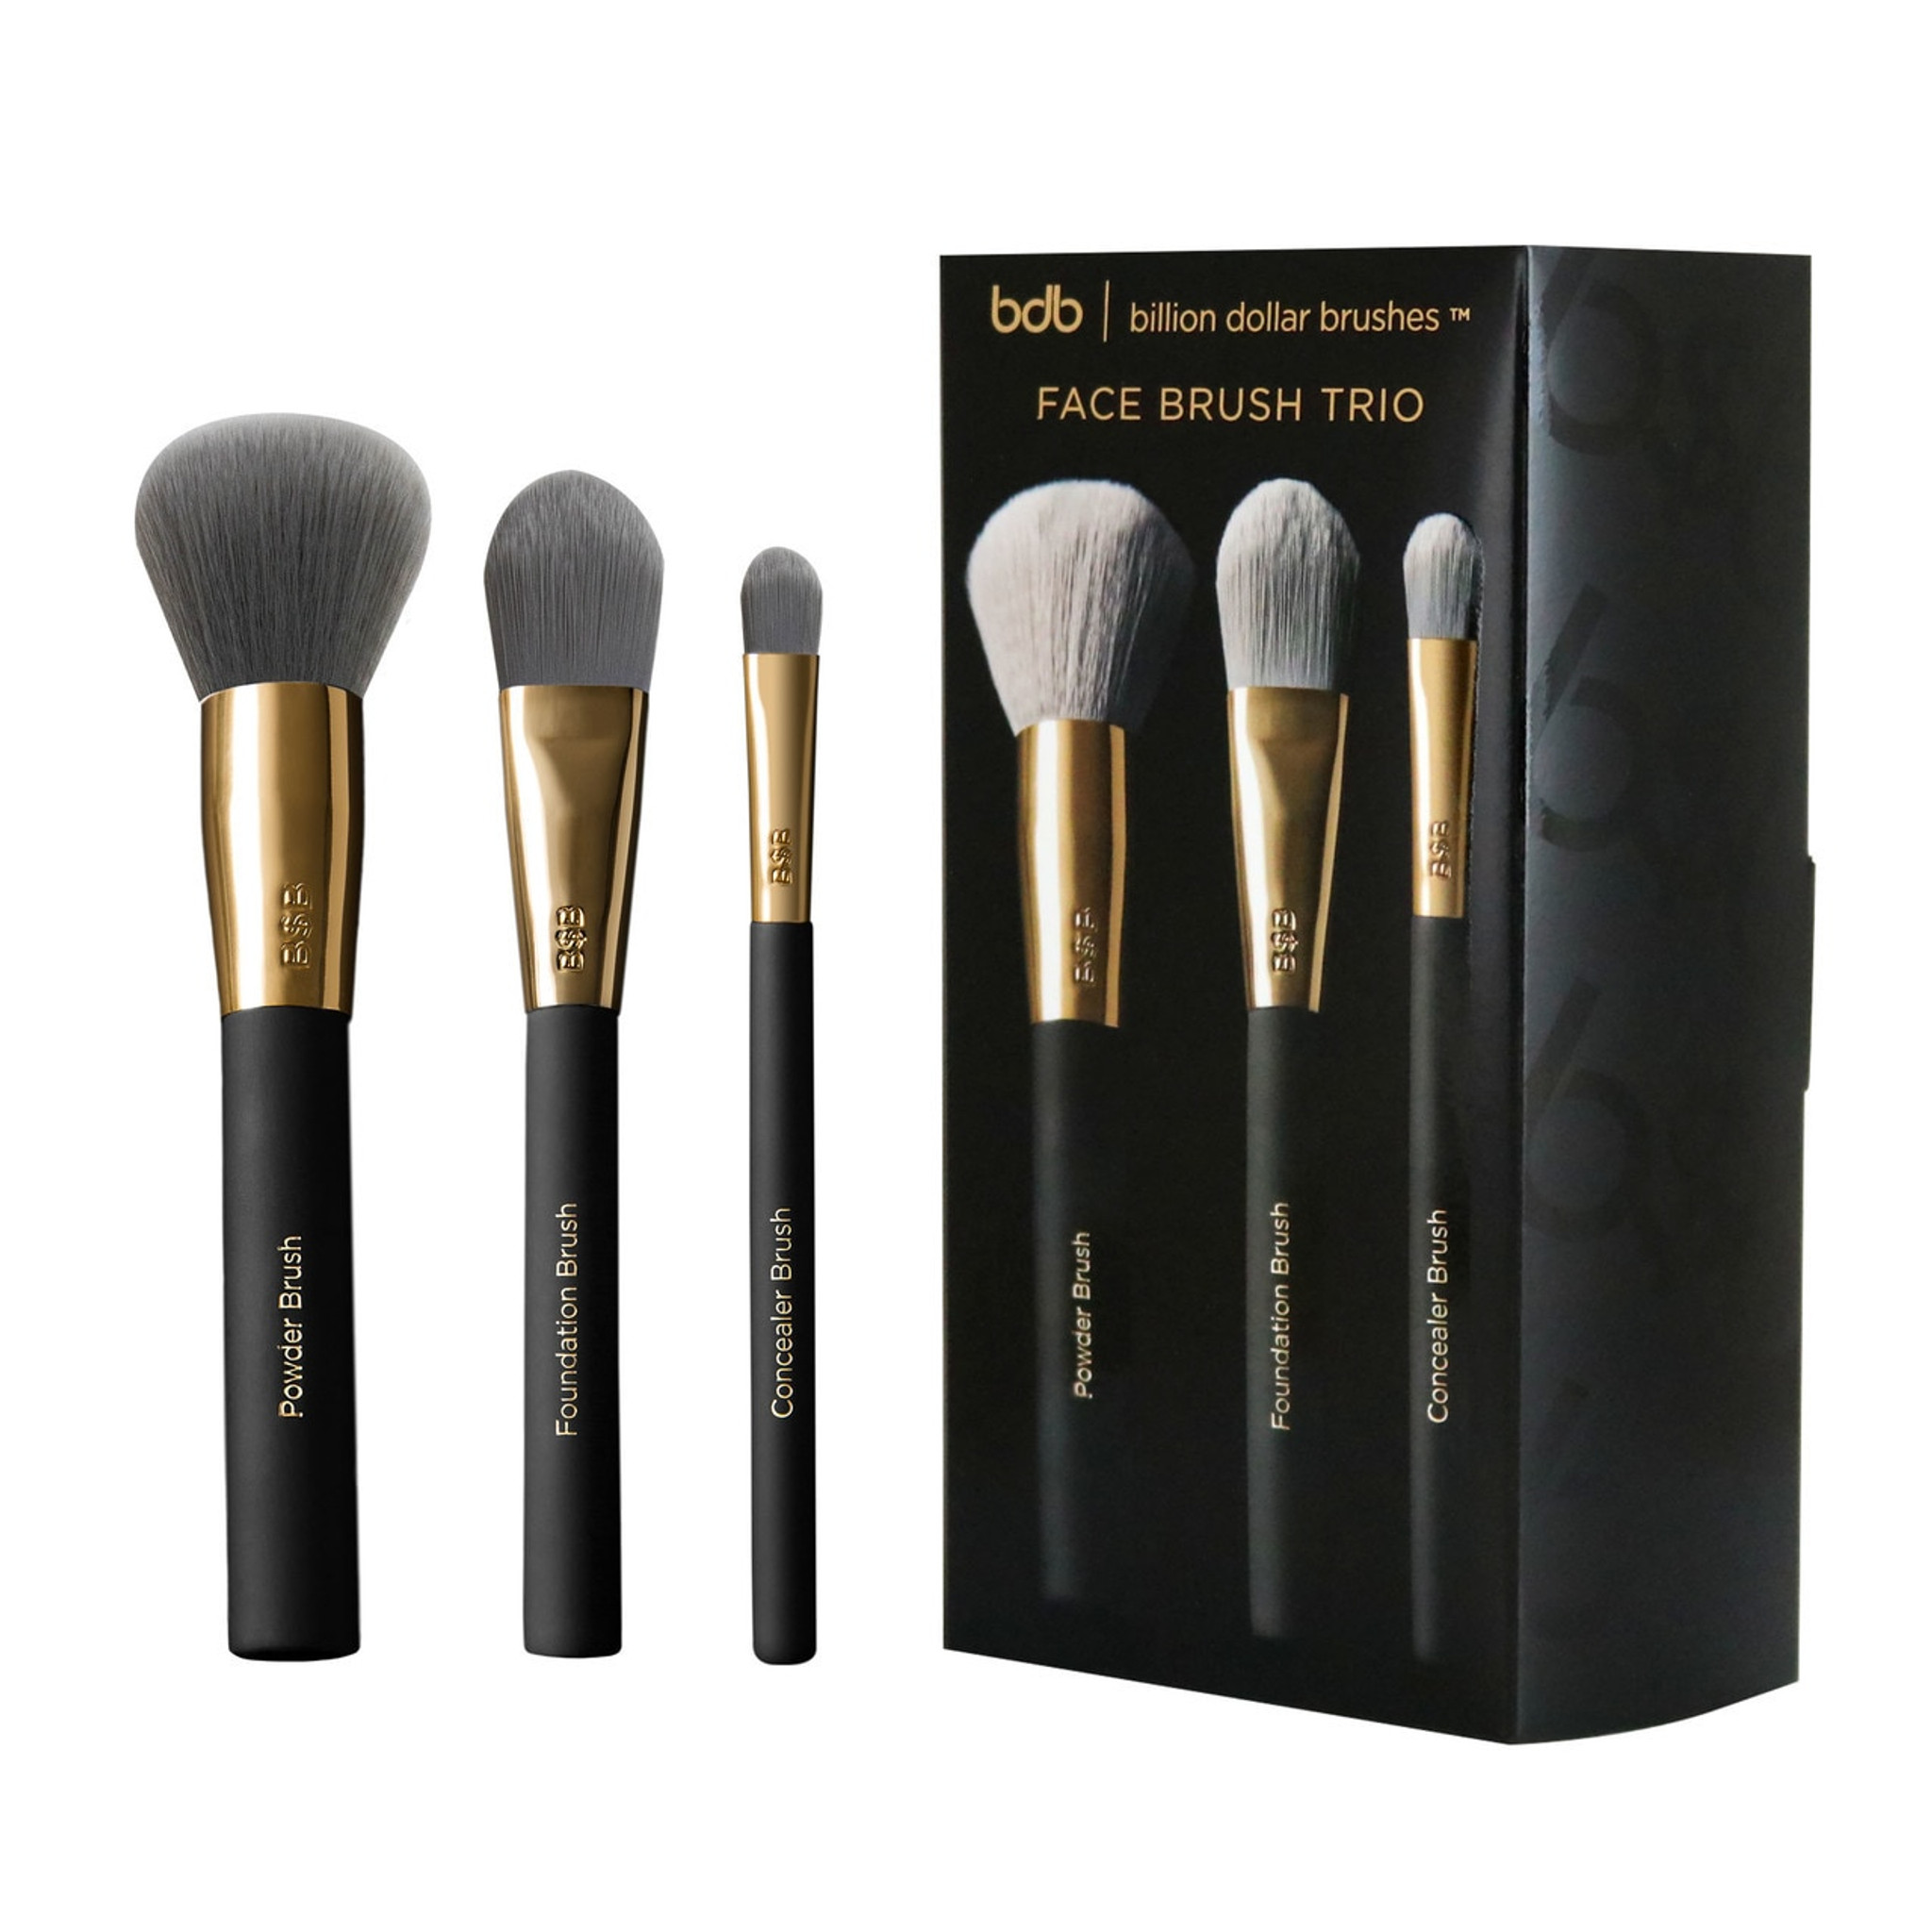 The Face Brush Trio travel product recommended by Tess DiNapoli on Pretty Progressive.